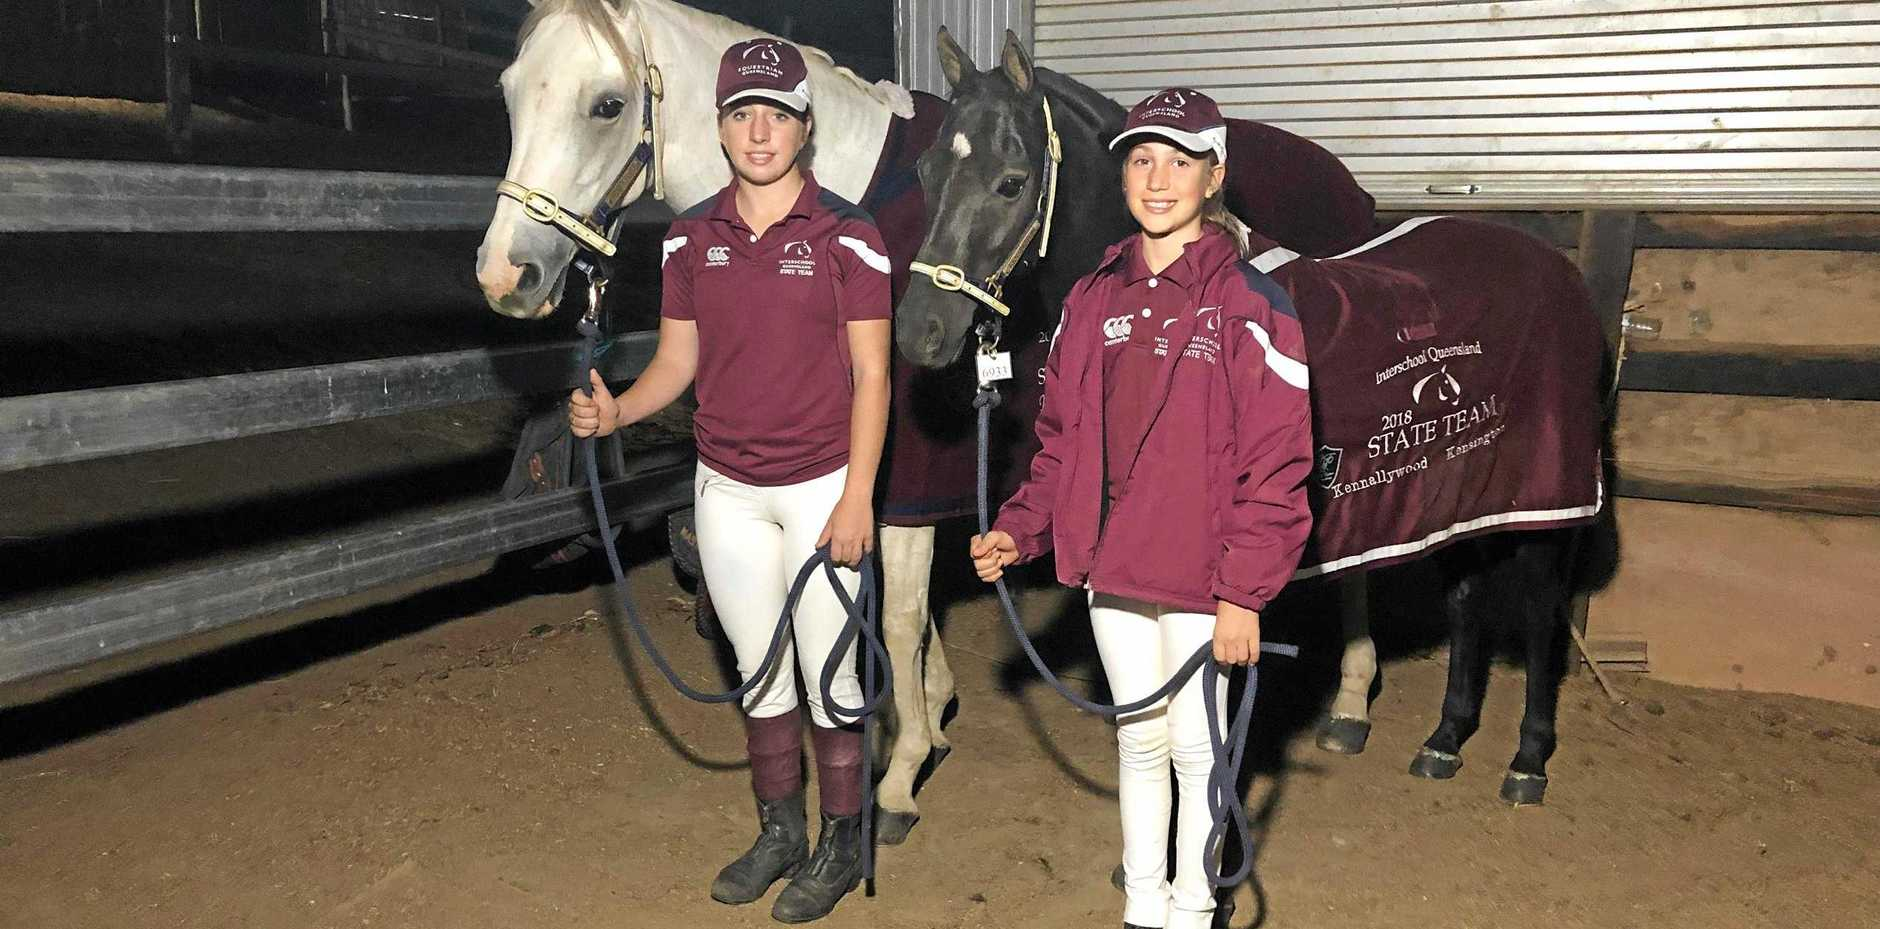 DOUBLE ACT: Jessica Fedrick, 17, and Clare Fedrick, 11, with their horses.